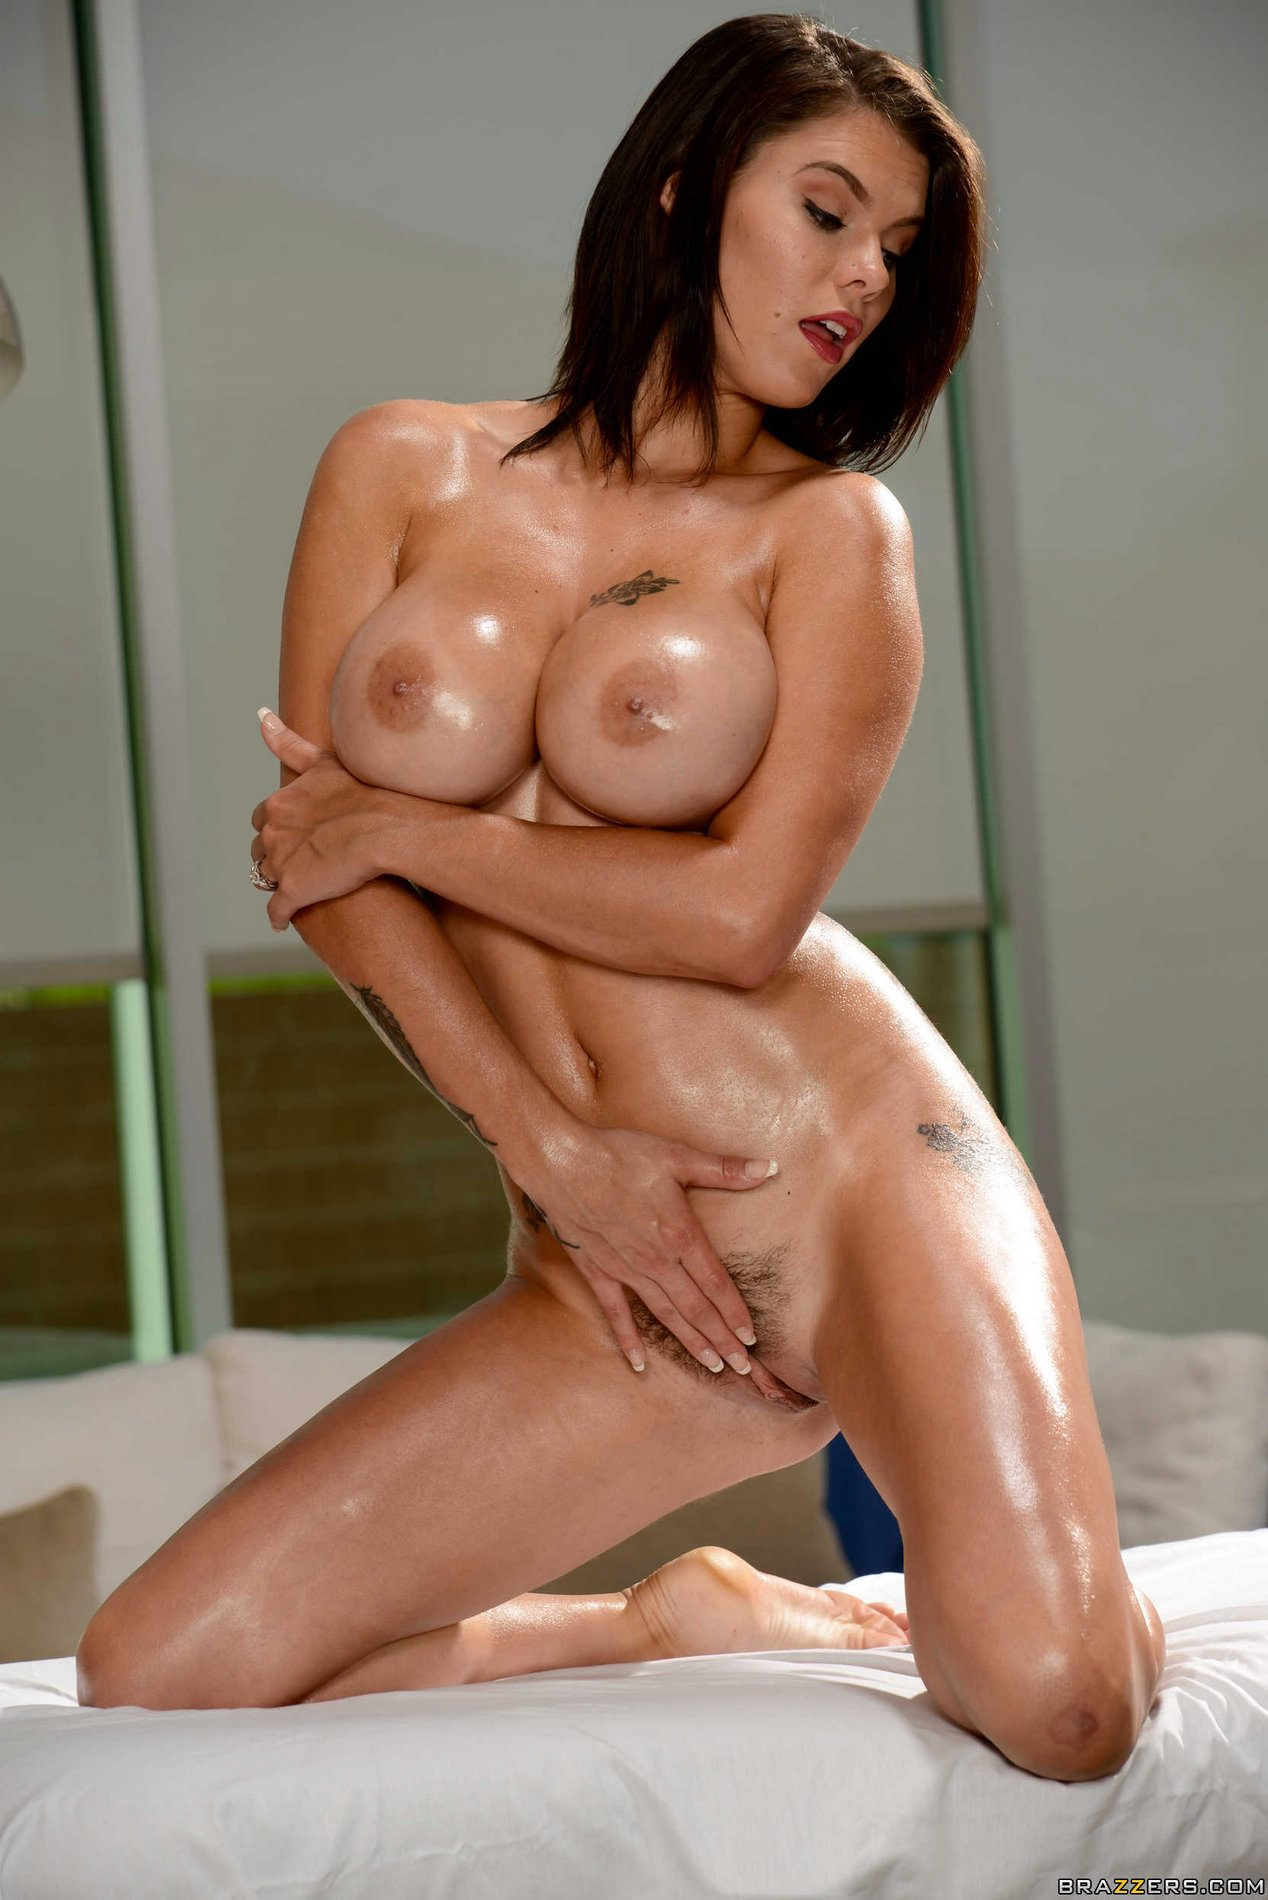 Beautiful naked brunette creamy flesh was